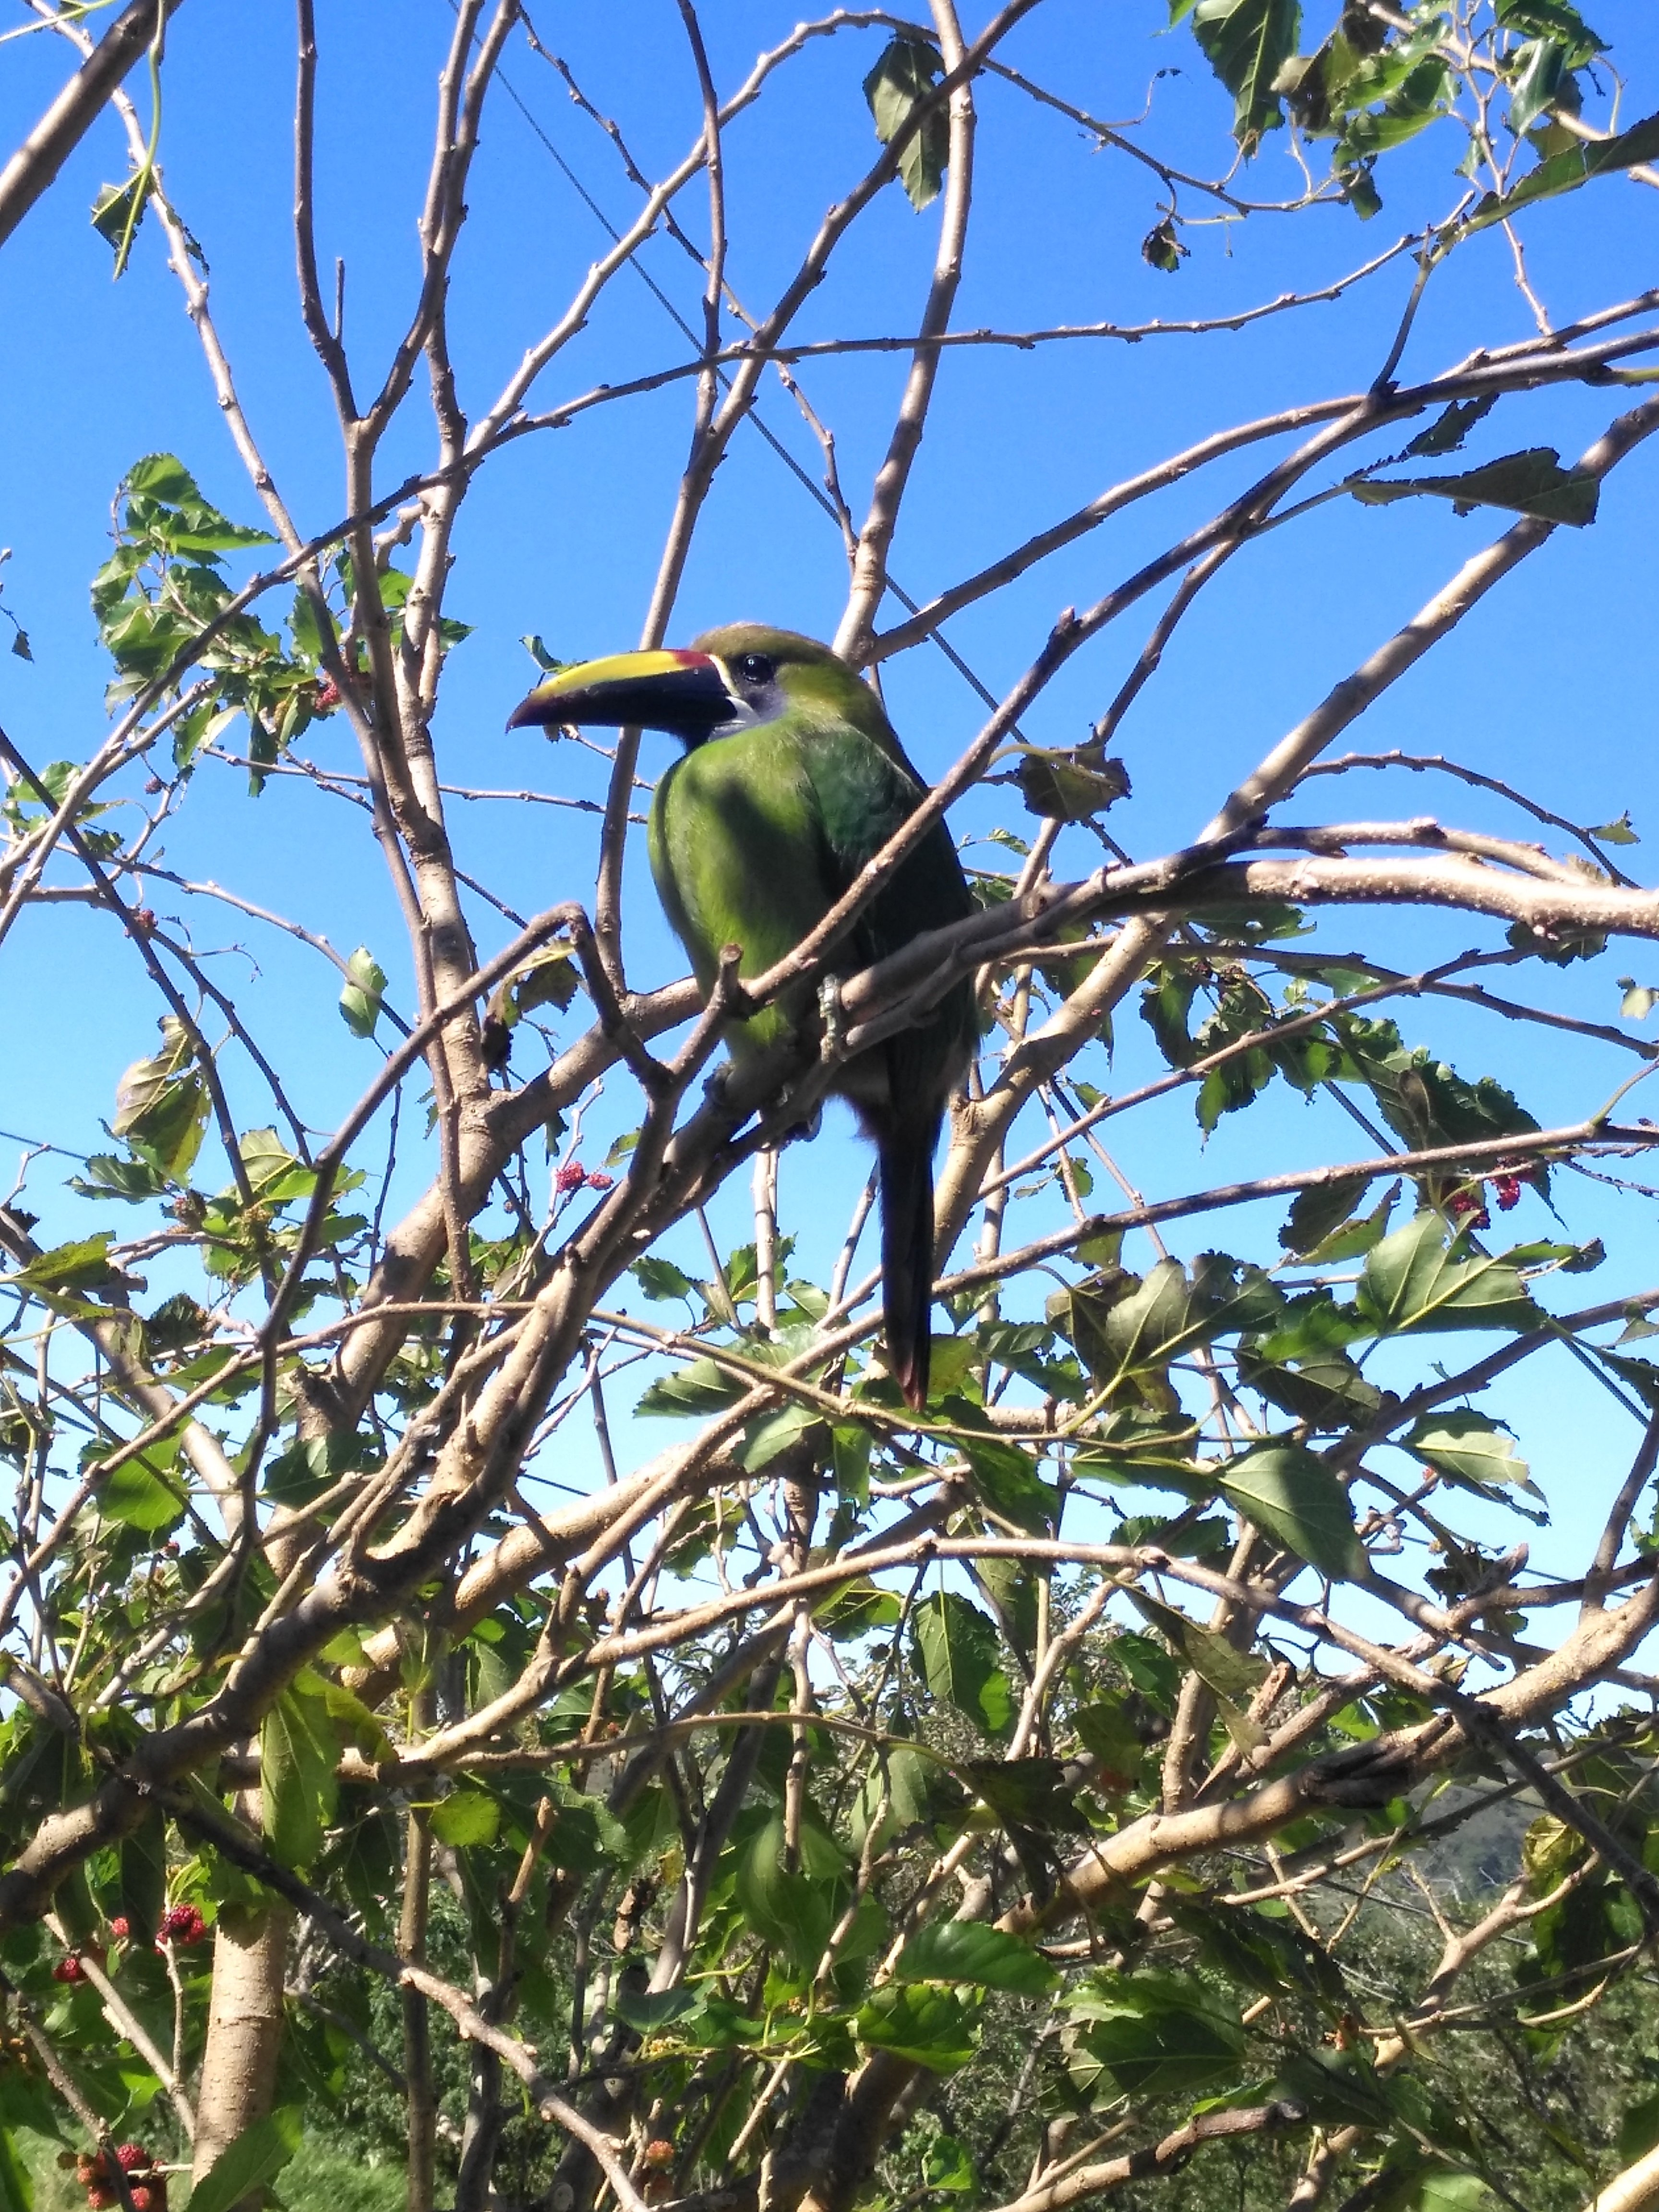 A green toucan on a bird watching tour